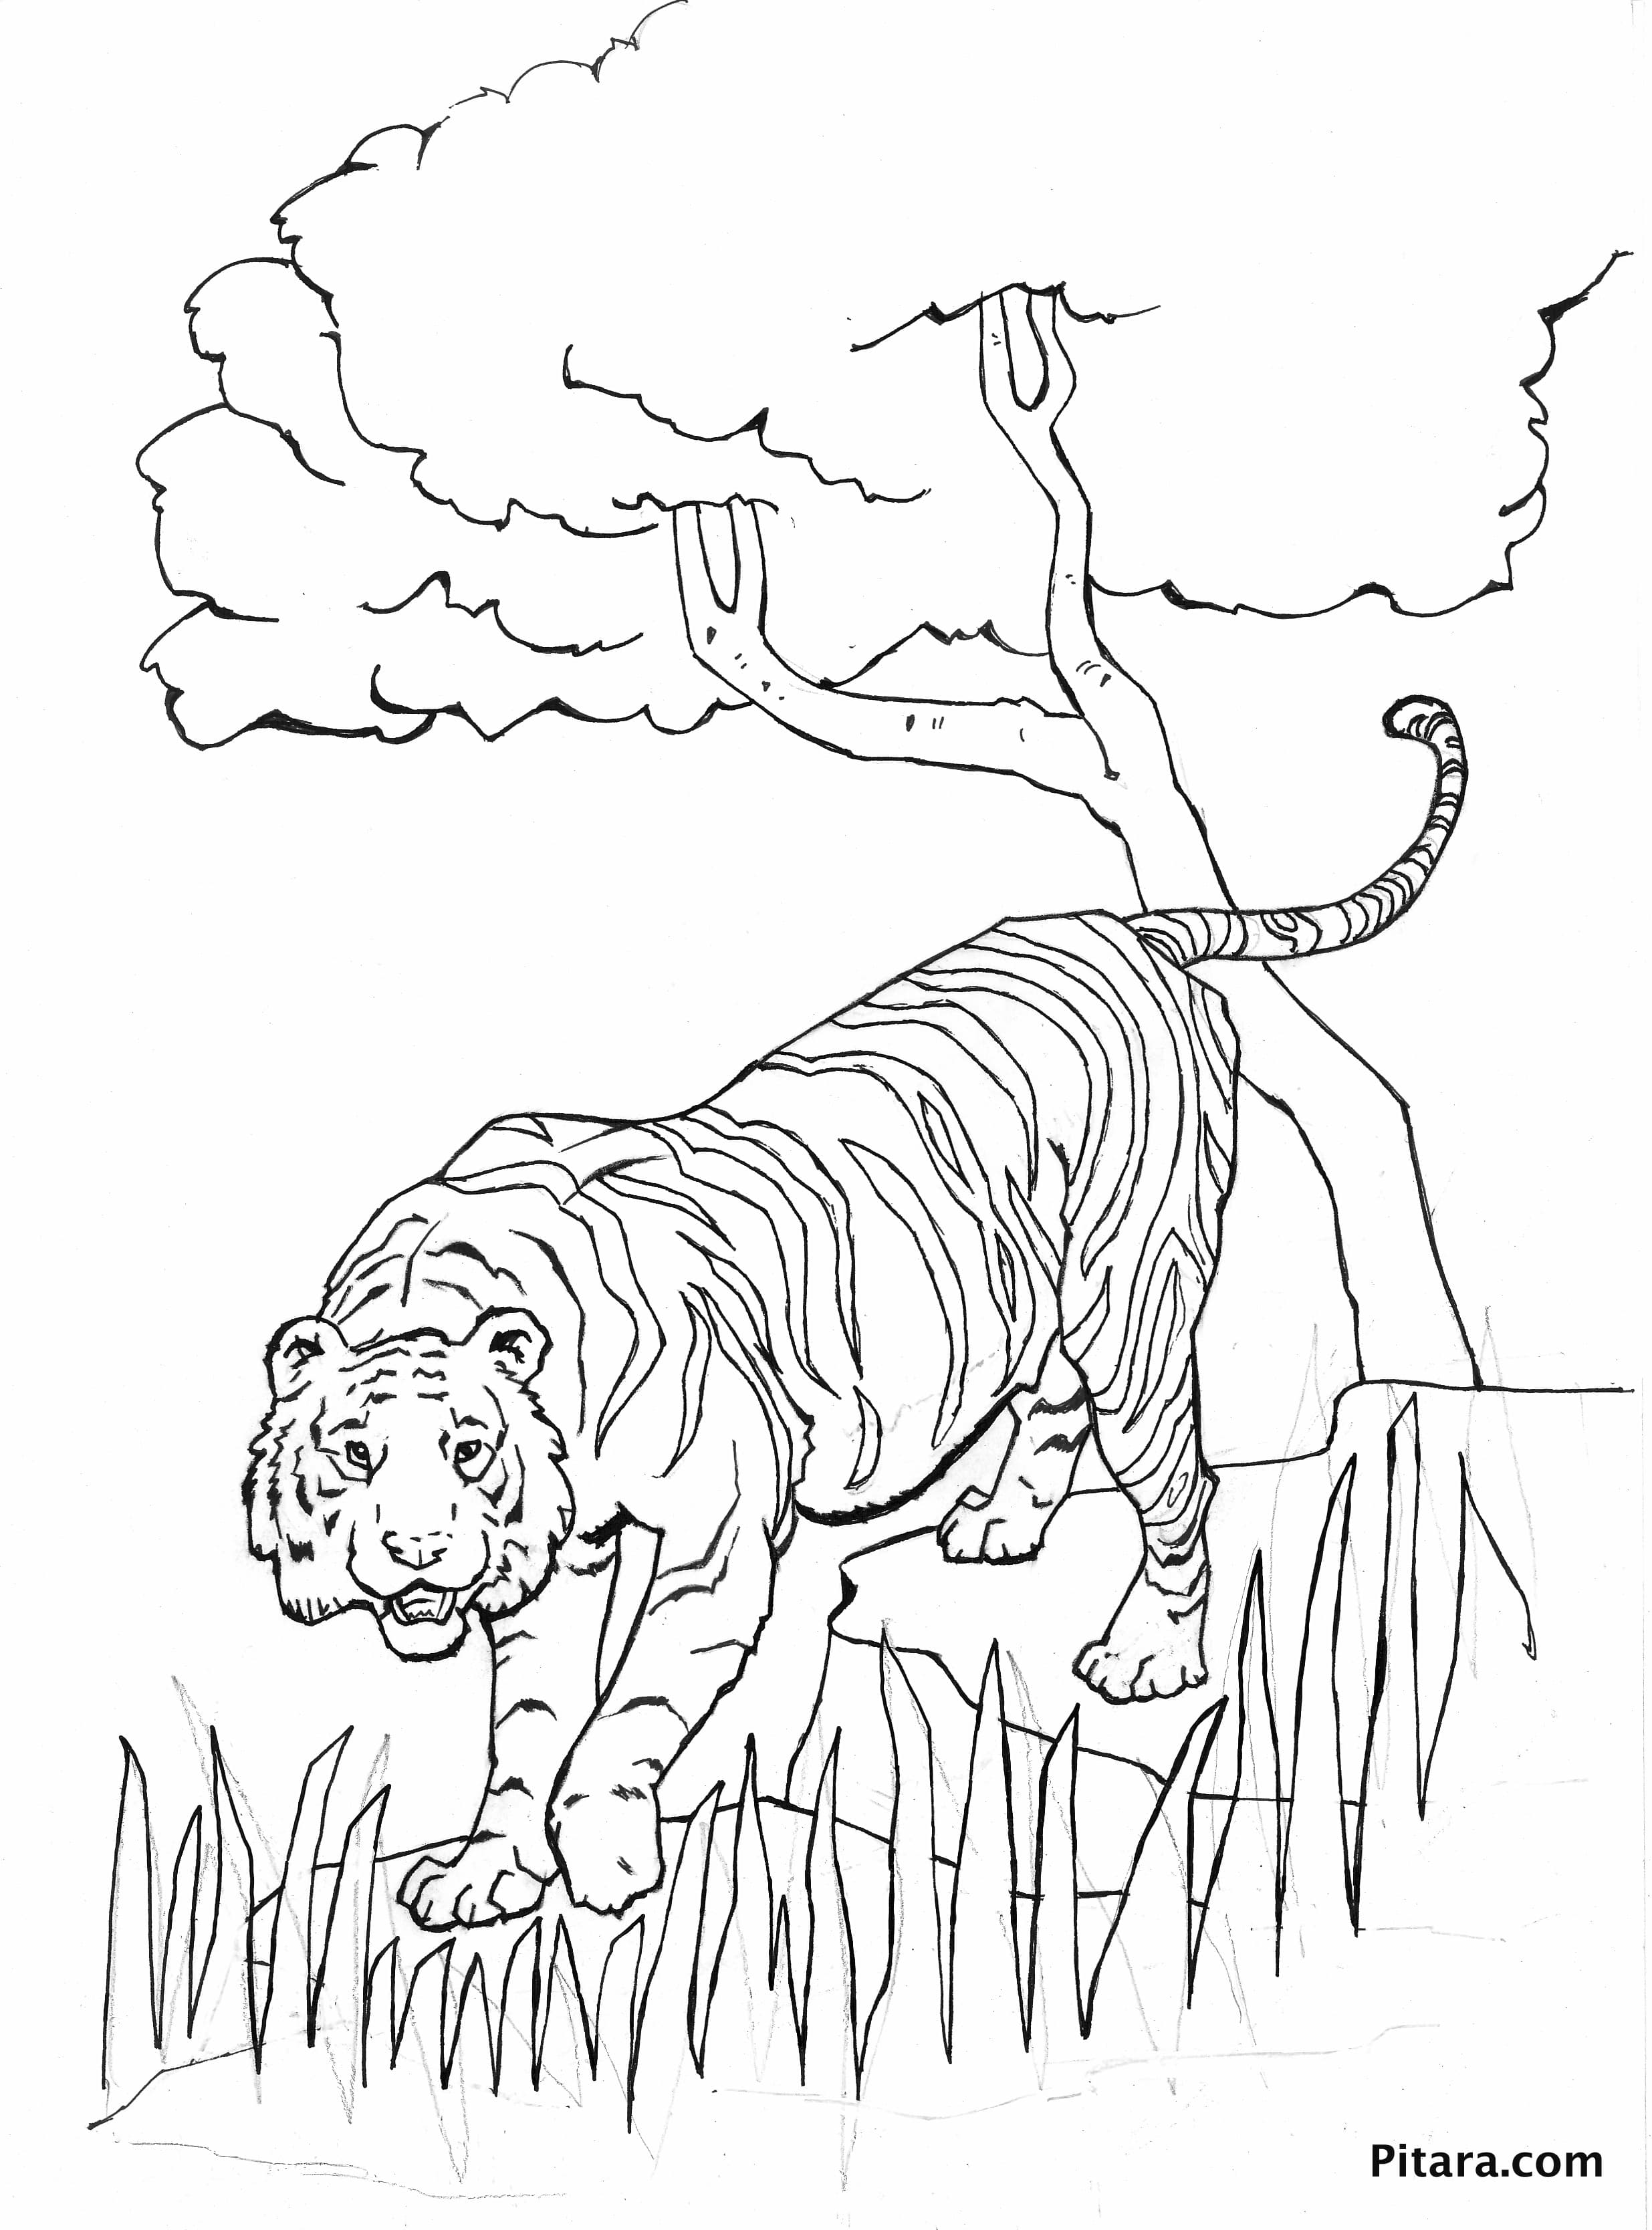 tiger images for colouring free tiger coloring pages for images colouring tiger